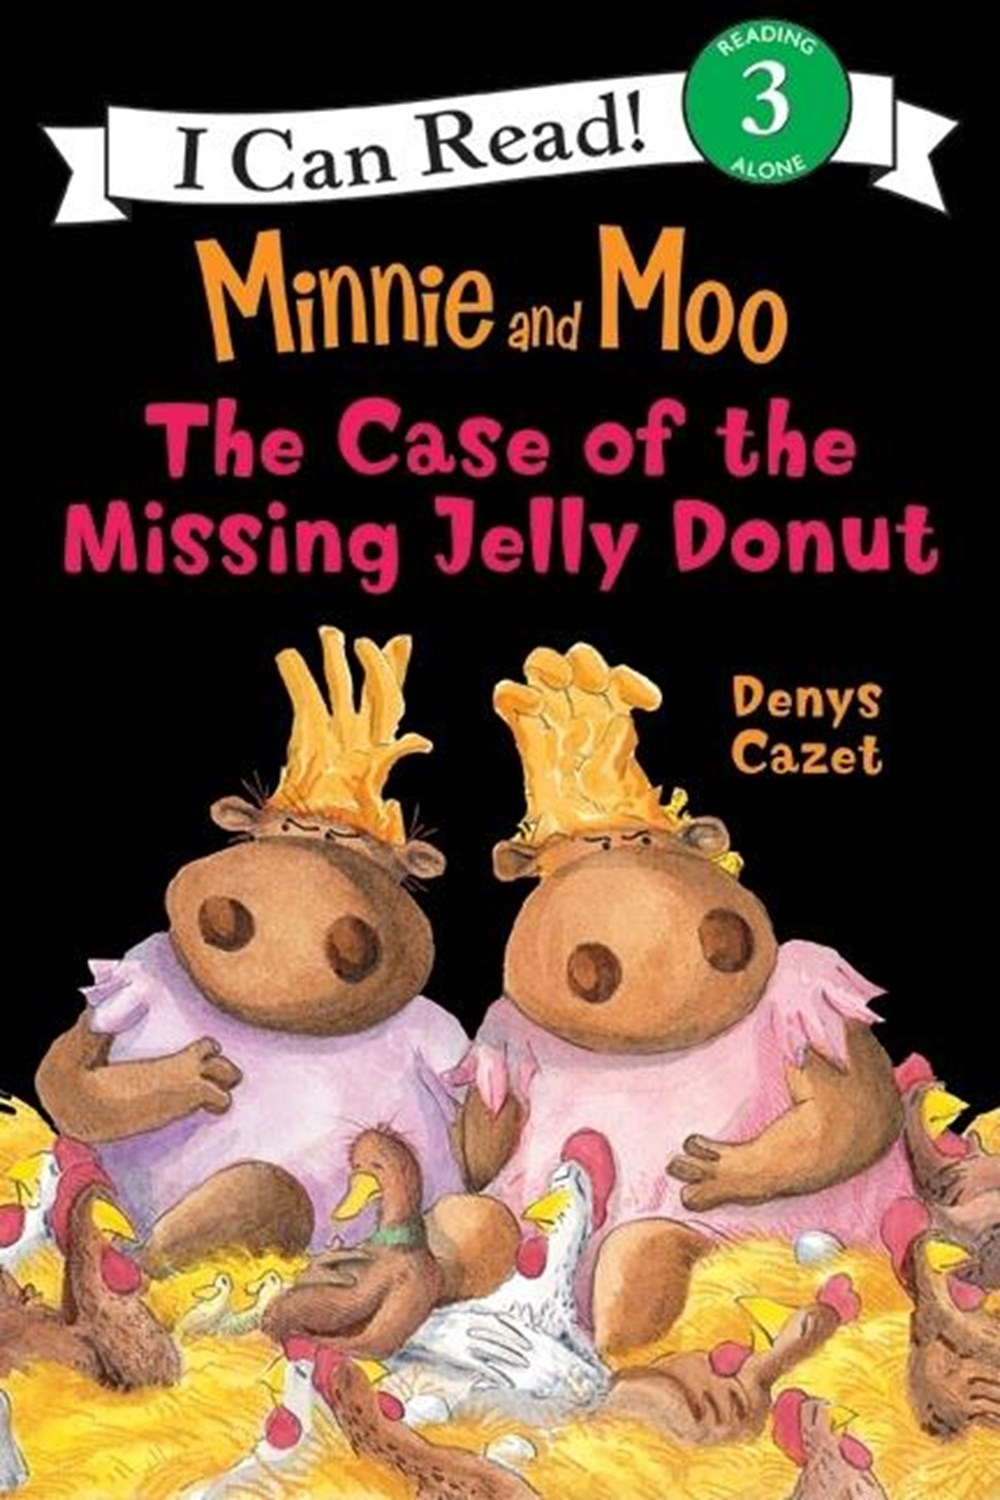 Case of the Missing Jelly Donut